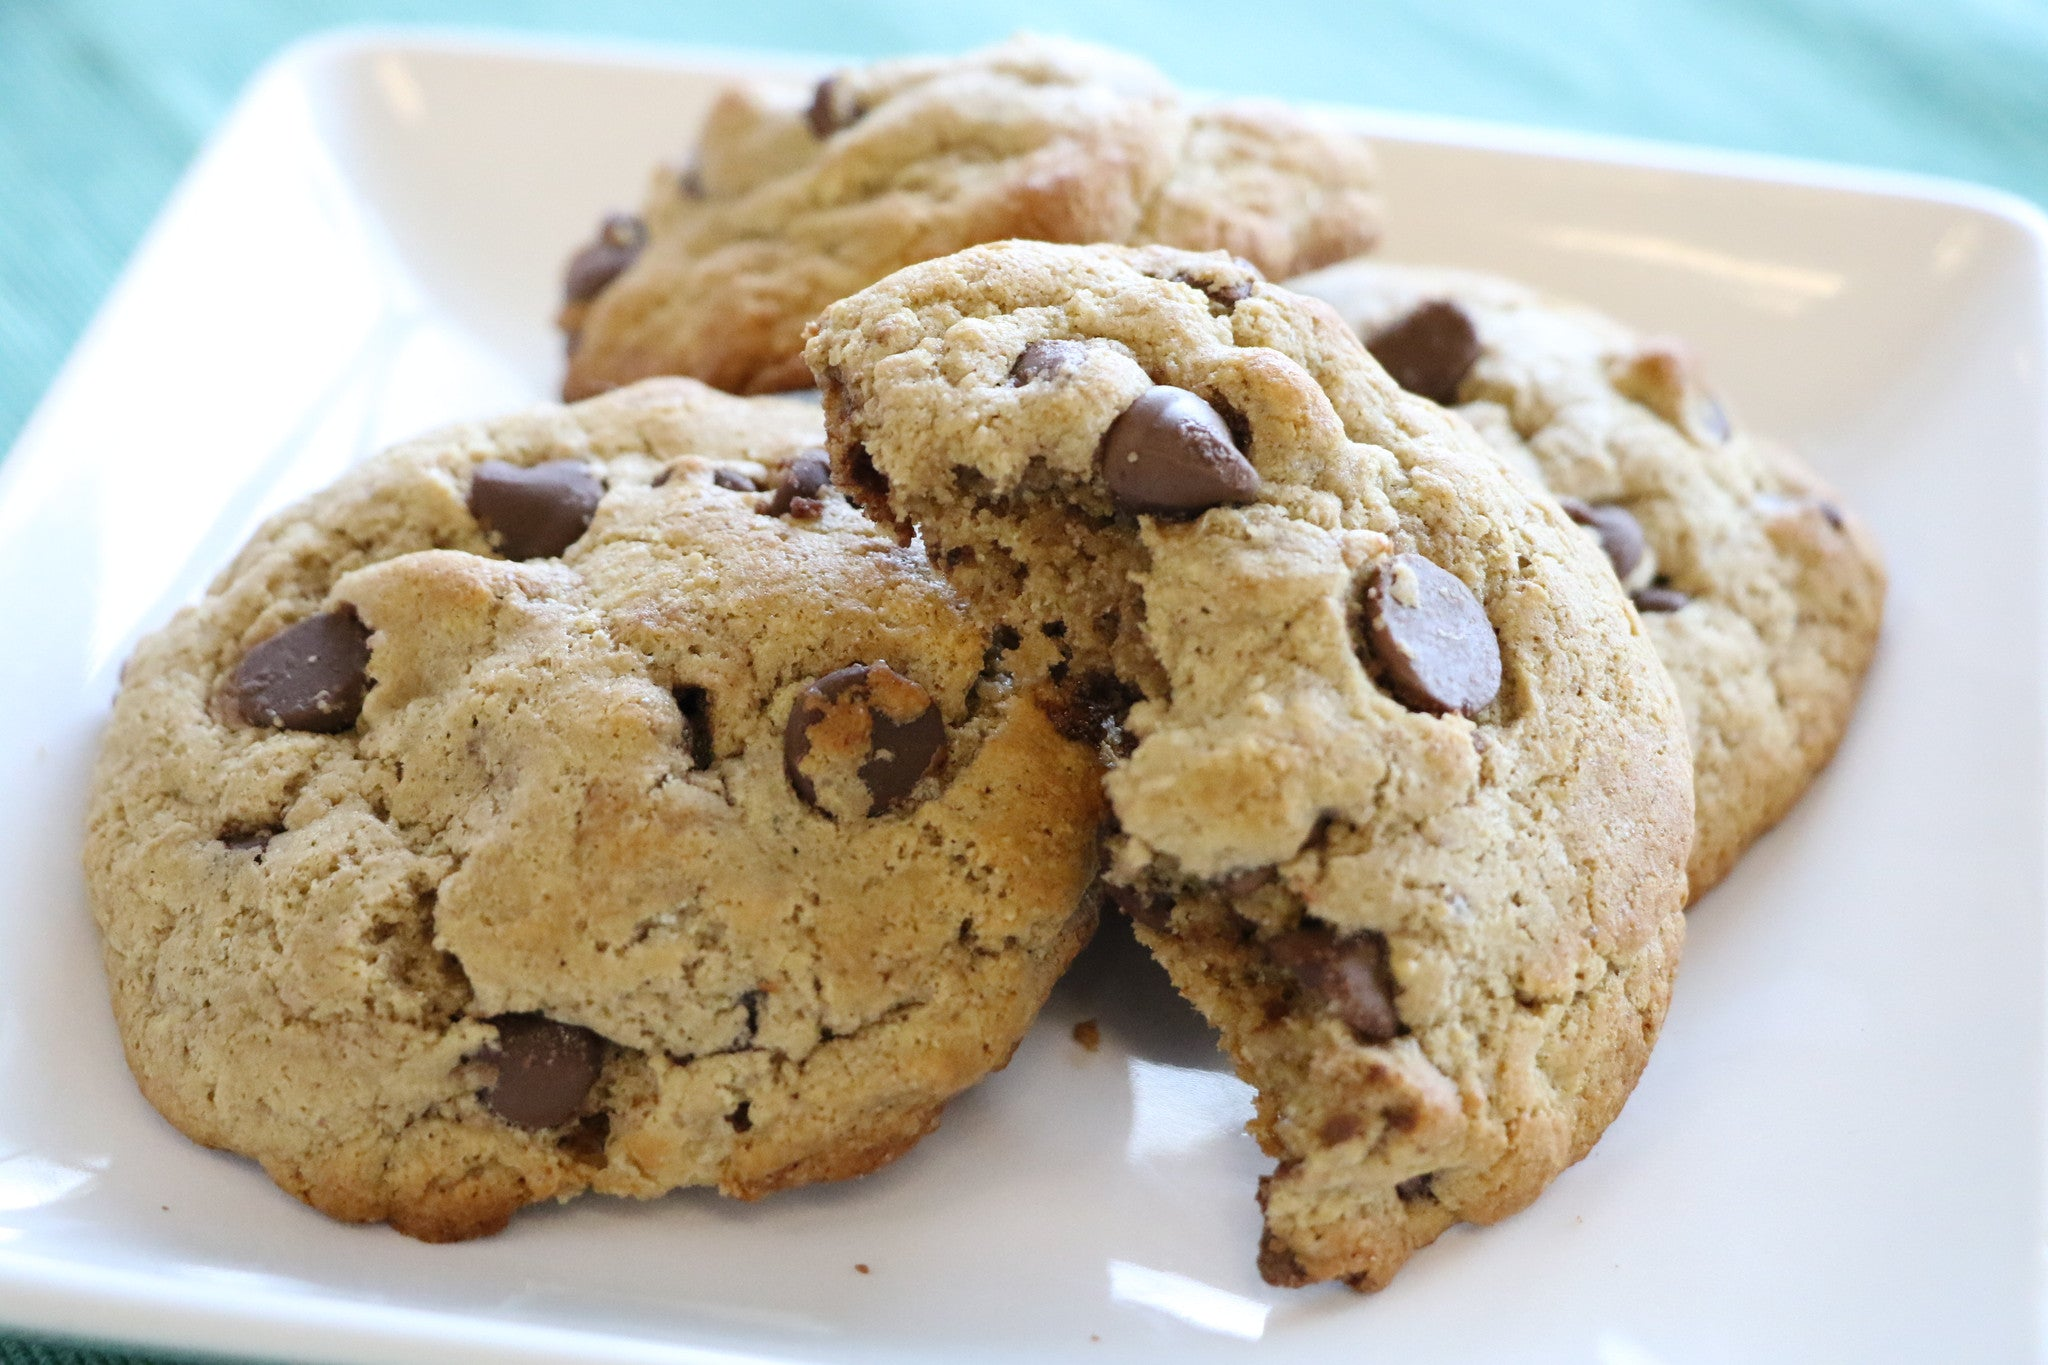 FlapJacked Low Fat Greek Yogurt Chocolate Chip Cookie